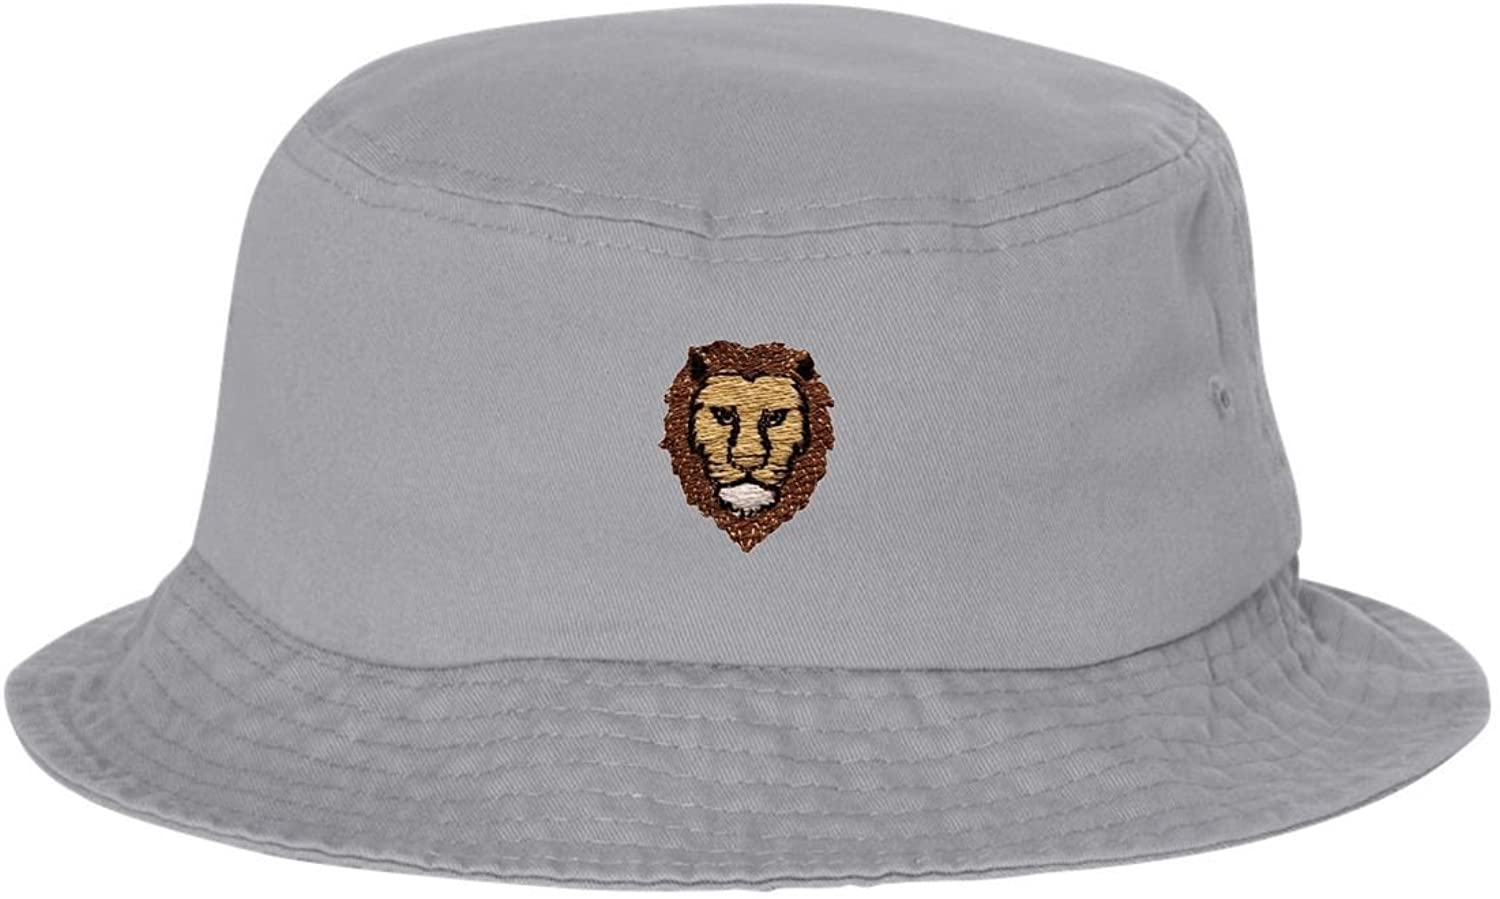 Go All Out Adult Lion Embroidered Bucket Cap Dad Hat